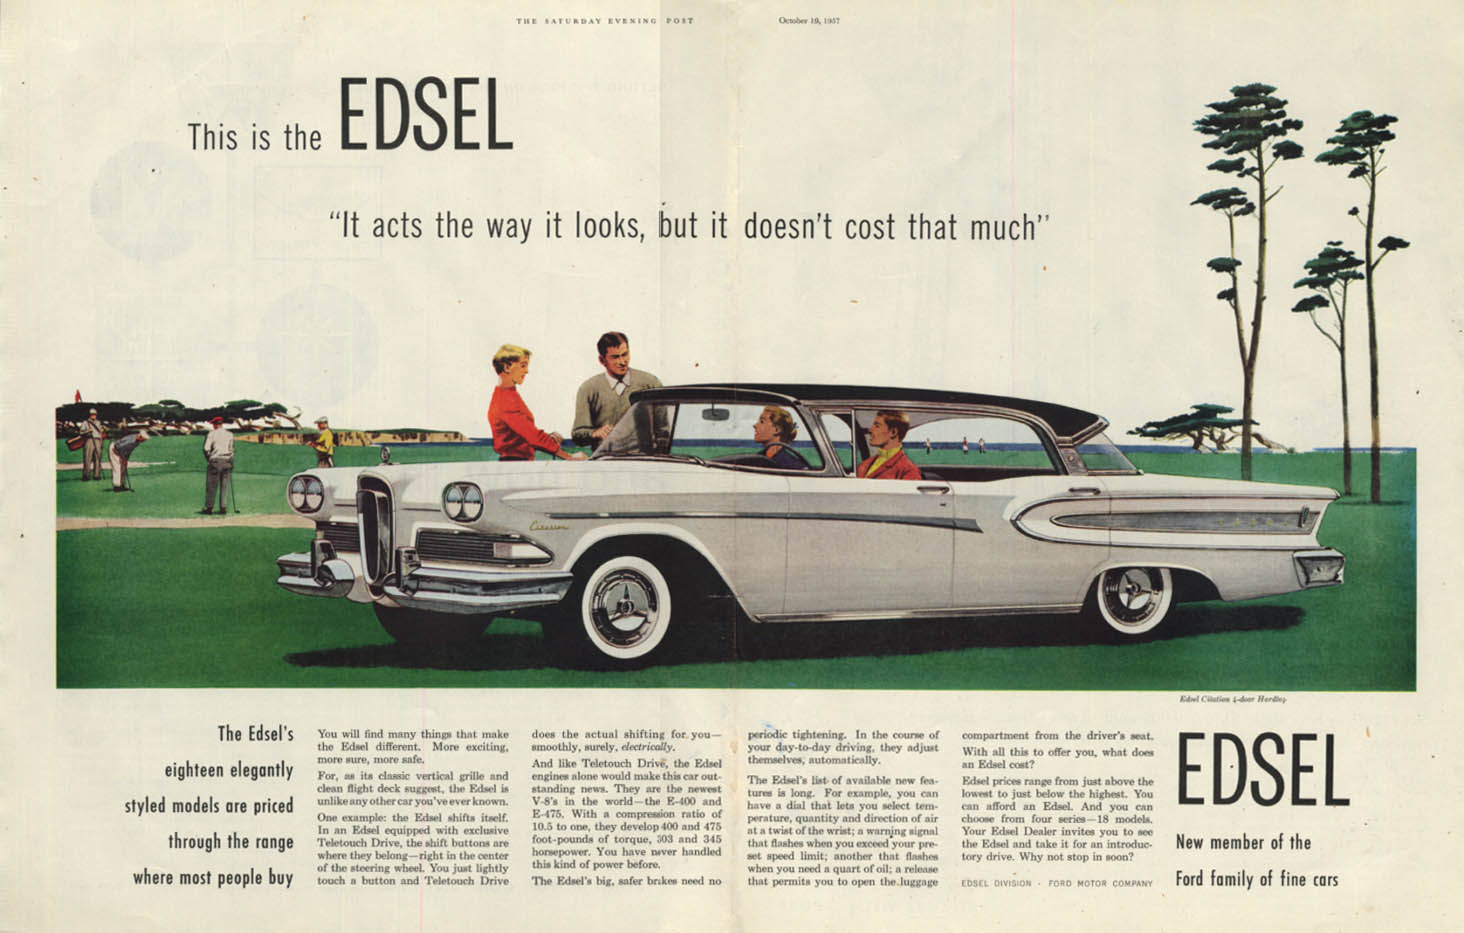 Acts the way it looks but doesn't cost that much Edsel Citation ad 1958 SEP